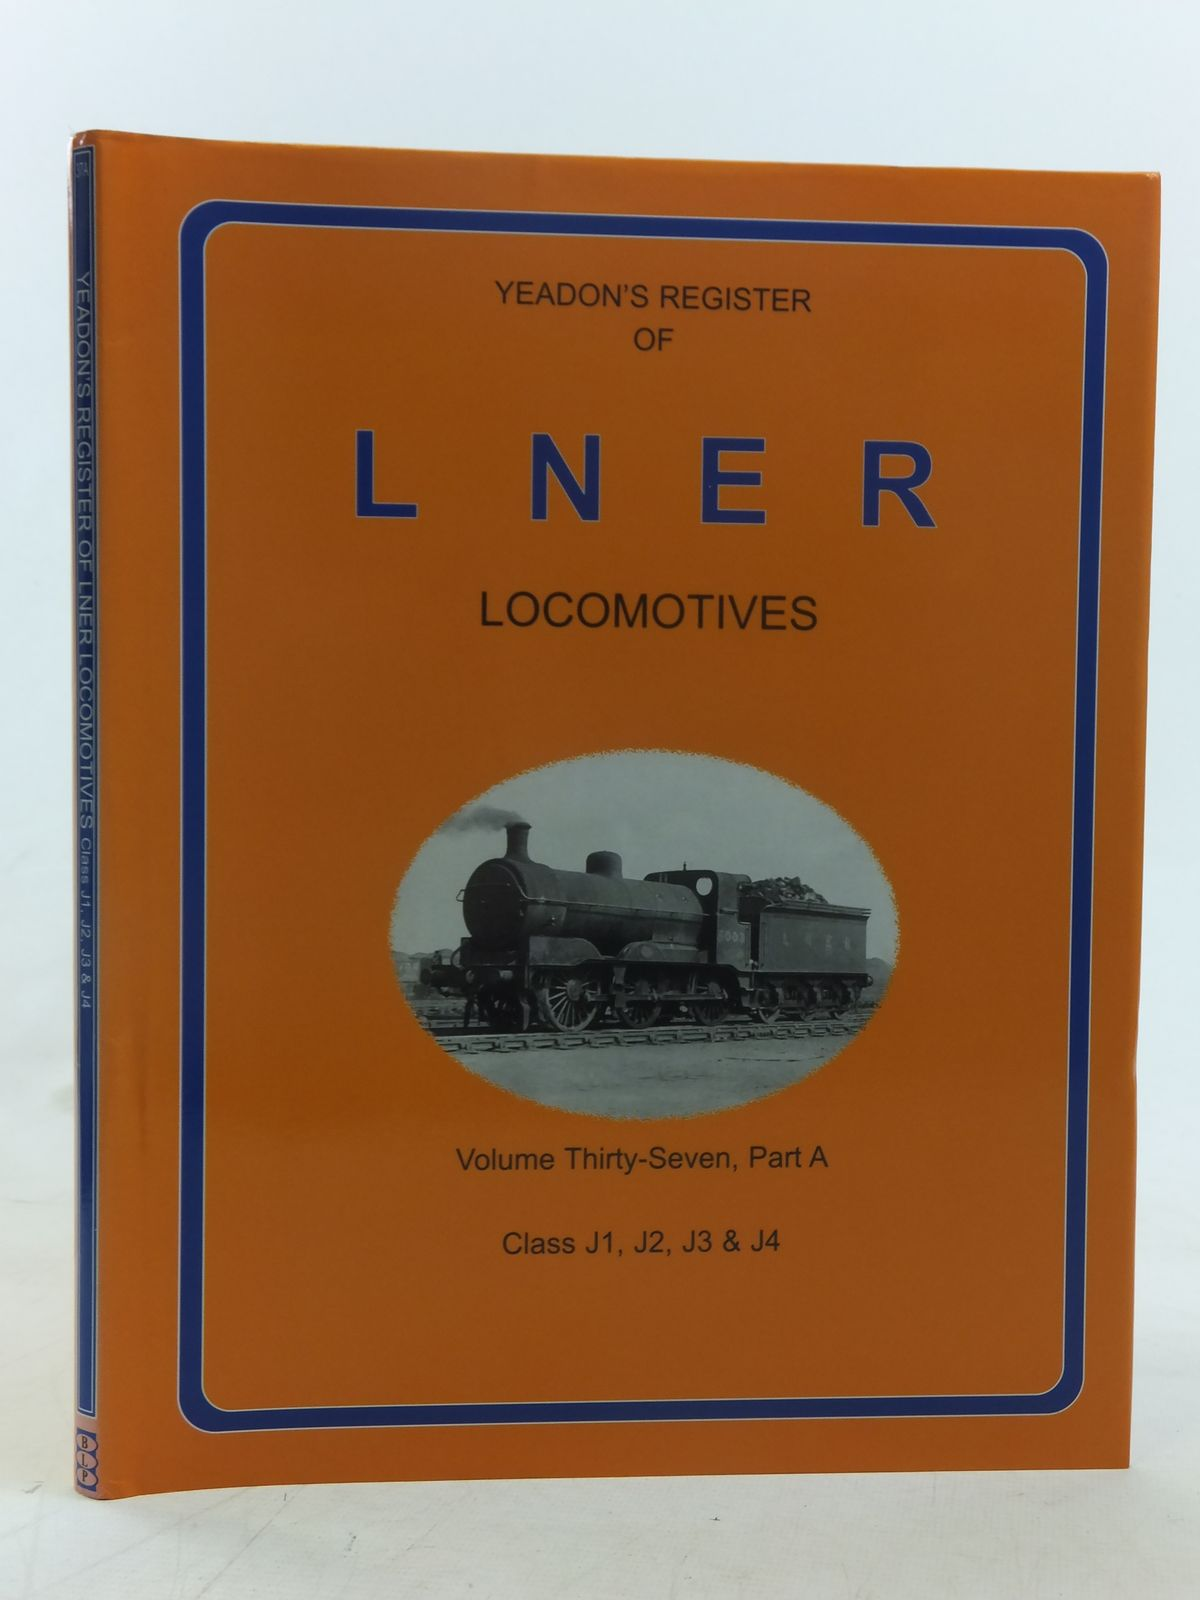 Photo of YEADON'S REGISTER OF LNER LOCOMOTIVES VOLUME THIRTY-SEVEN PART A published by Challenger Publications, Book Law Publications (STOCK CODE: 1606911)  for sale by Stella & Rose's Books